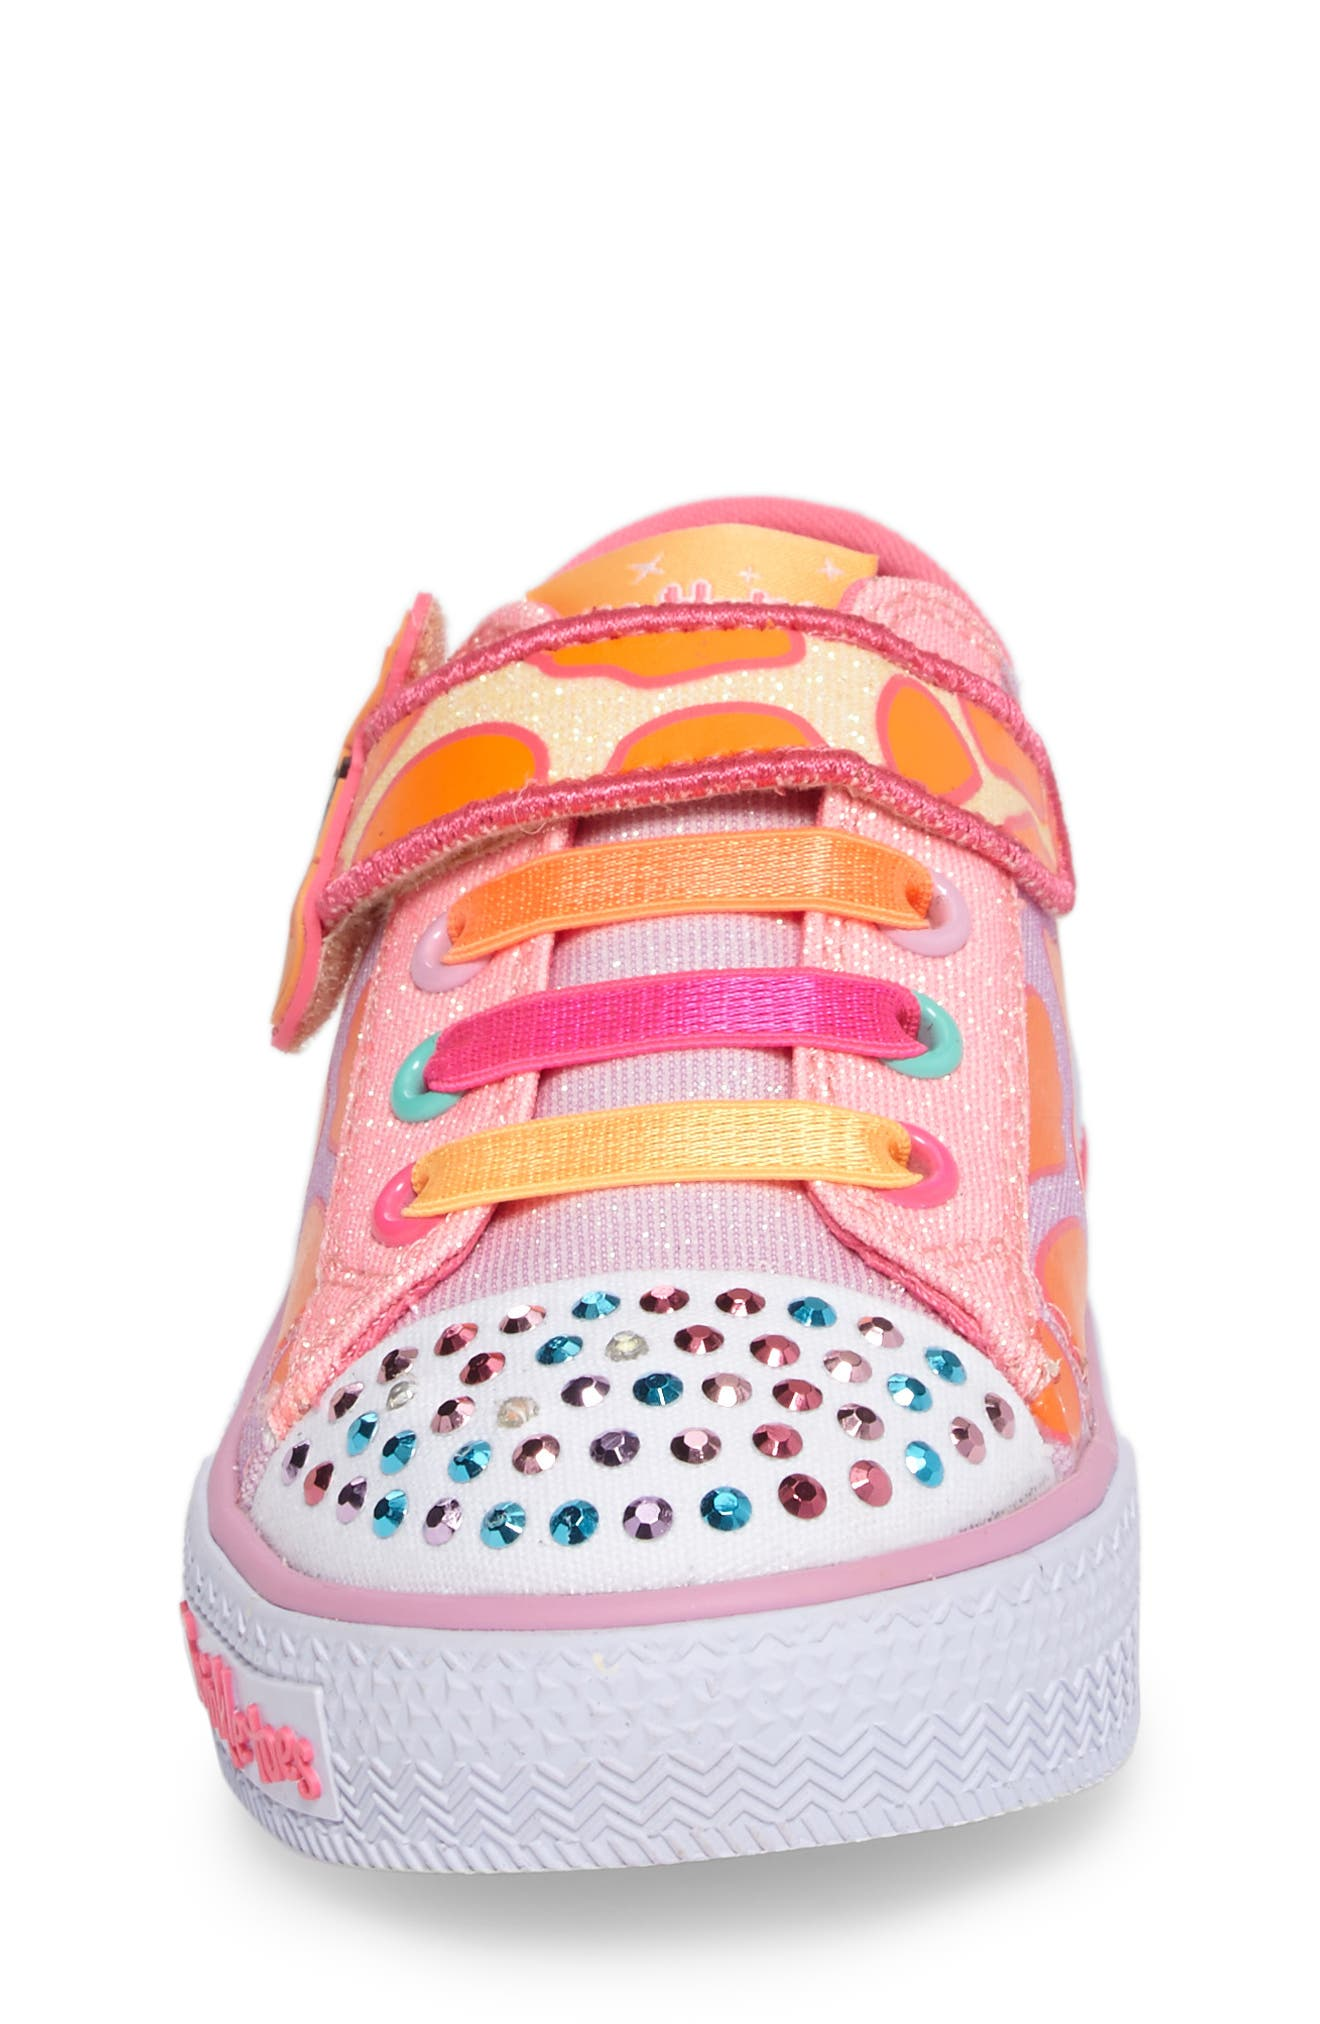 Alternate Image 4  - SKECHERS Shuffles - Party Pets Sneaker (Walker & Toddler)